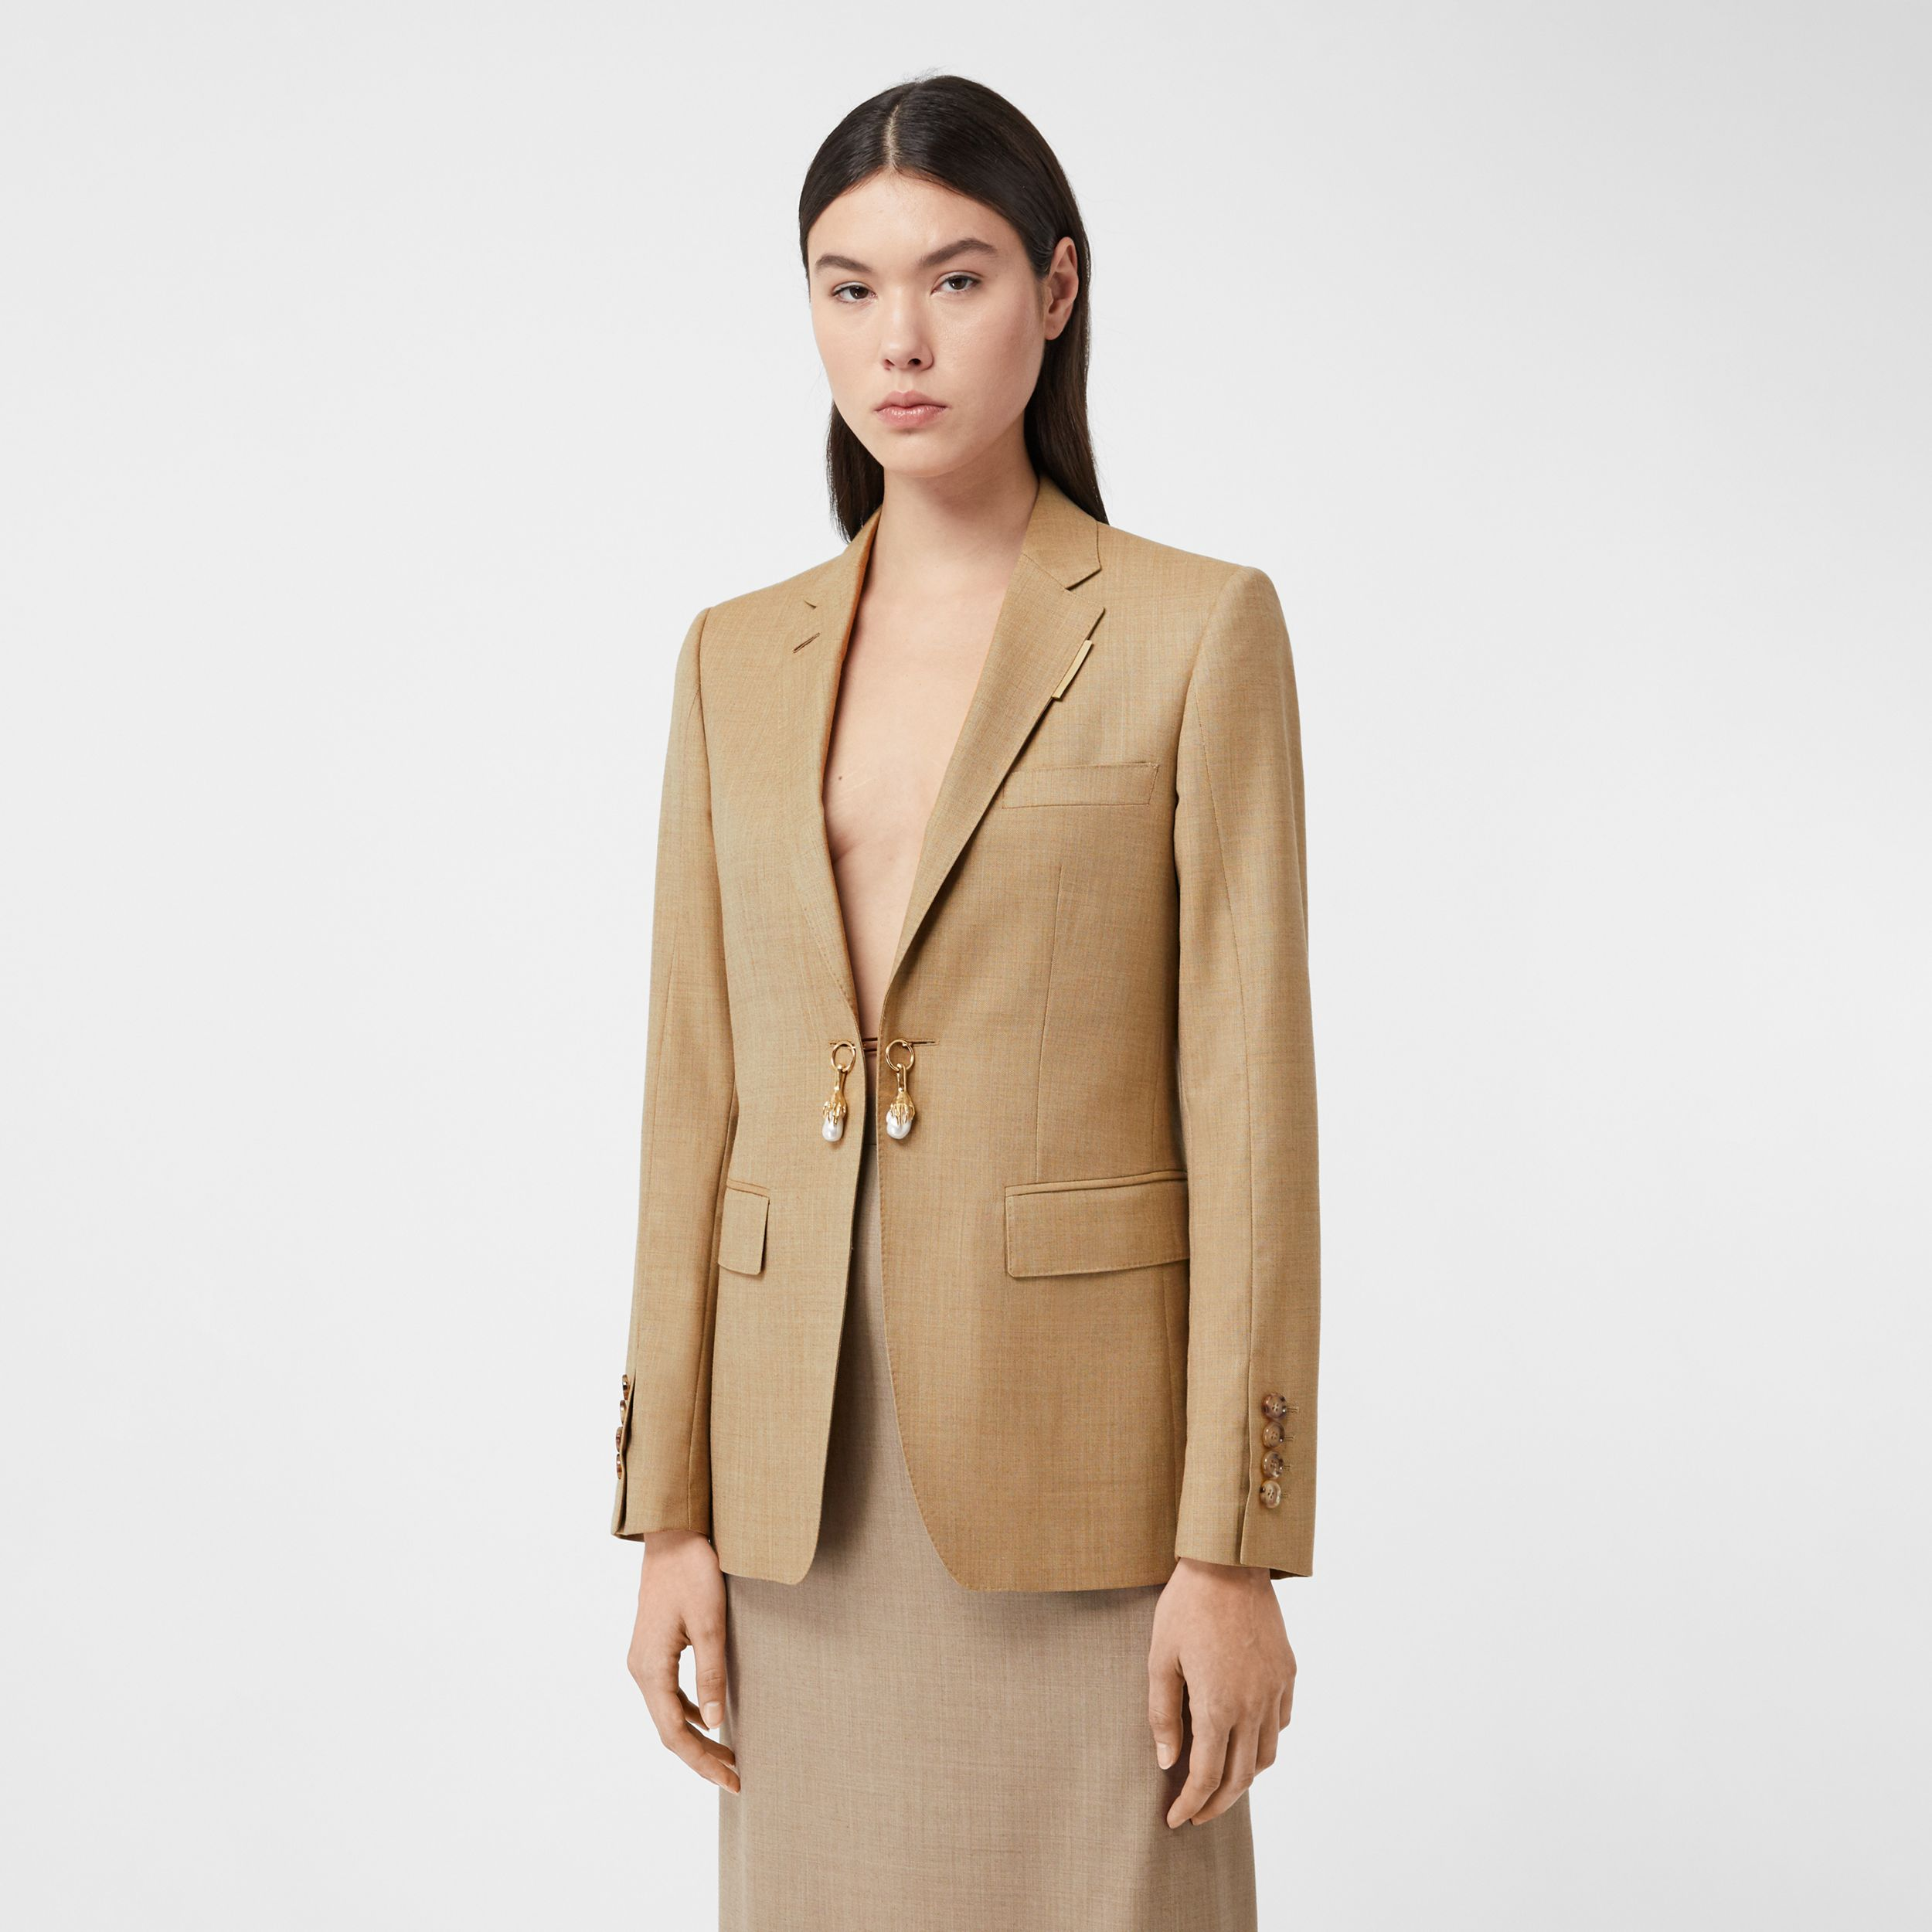 Link Detail Wool Cashmere Blazer in Pecan Melange - Women | Burberry - 1